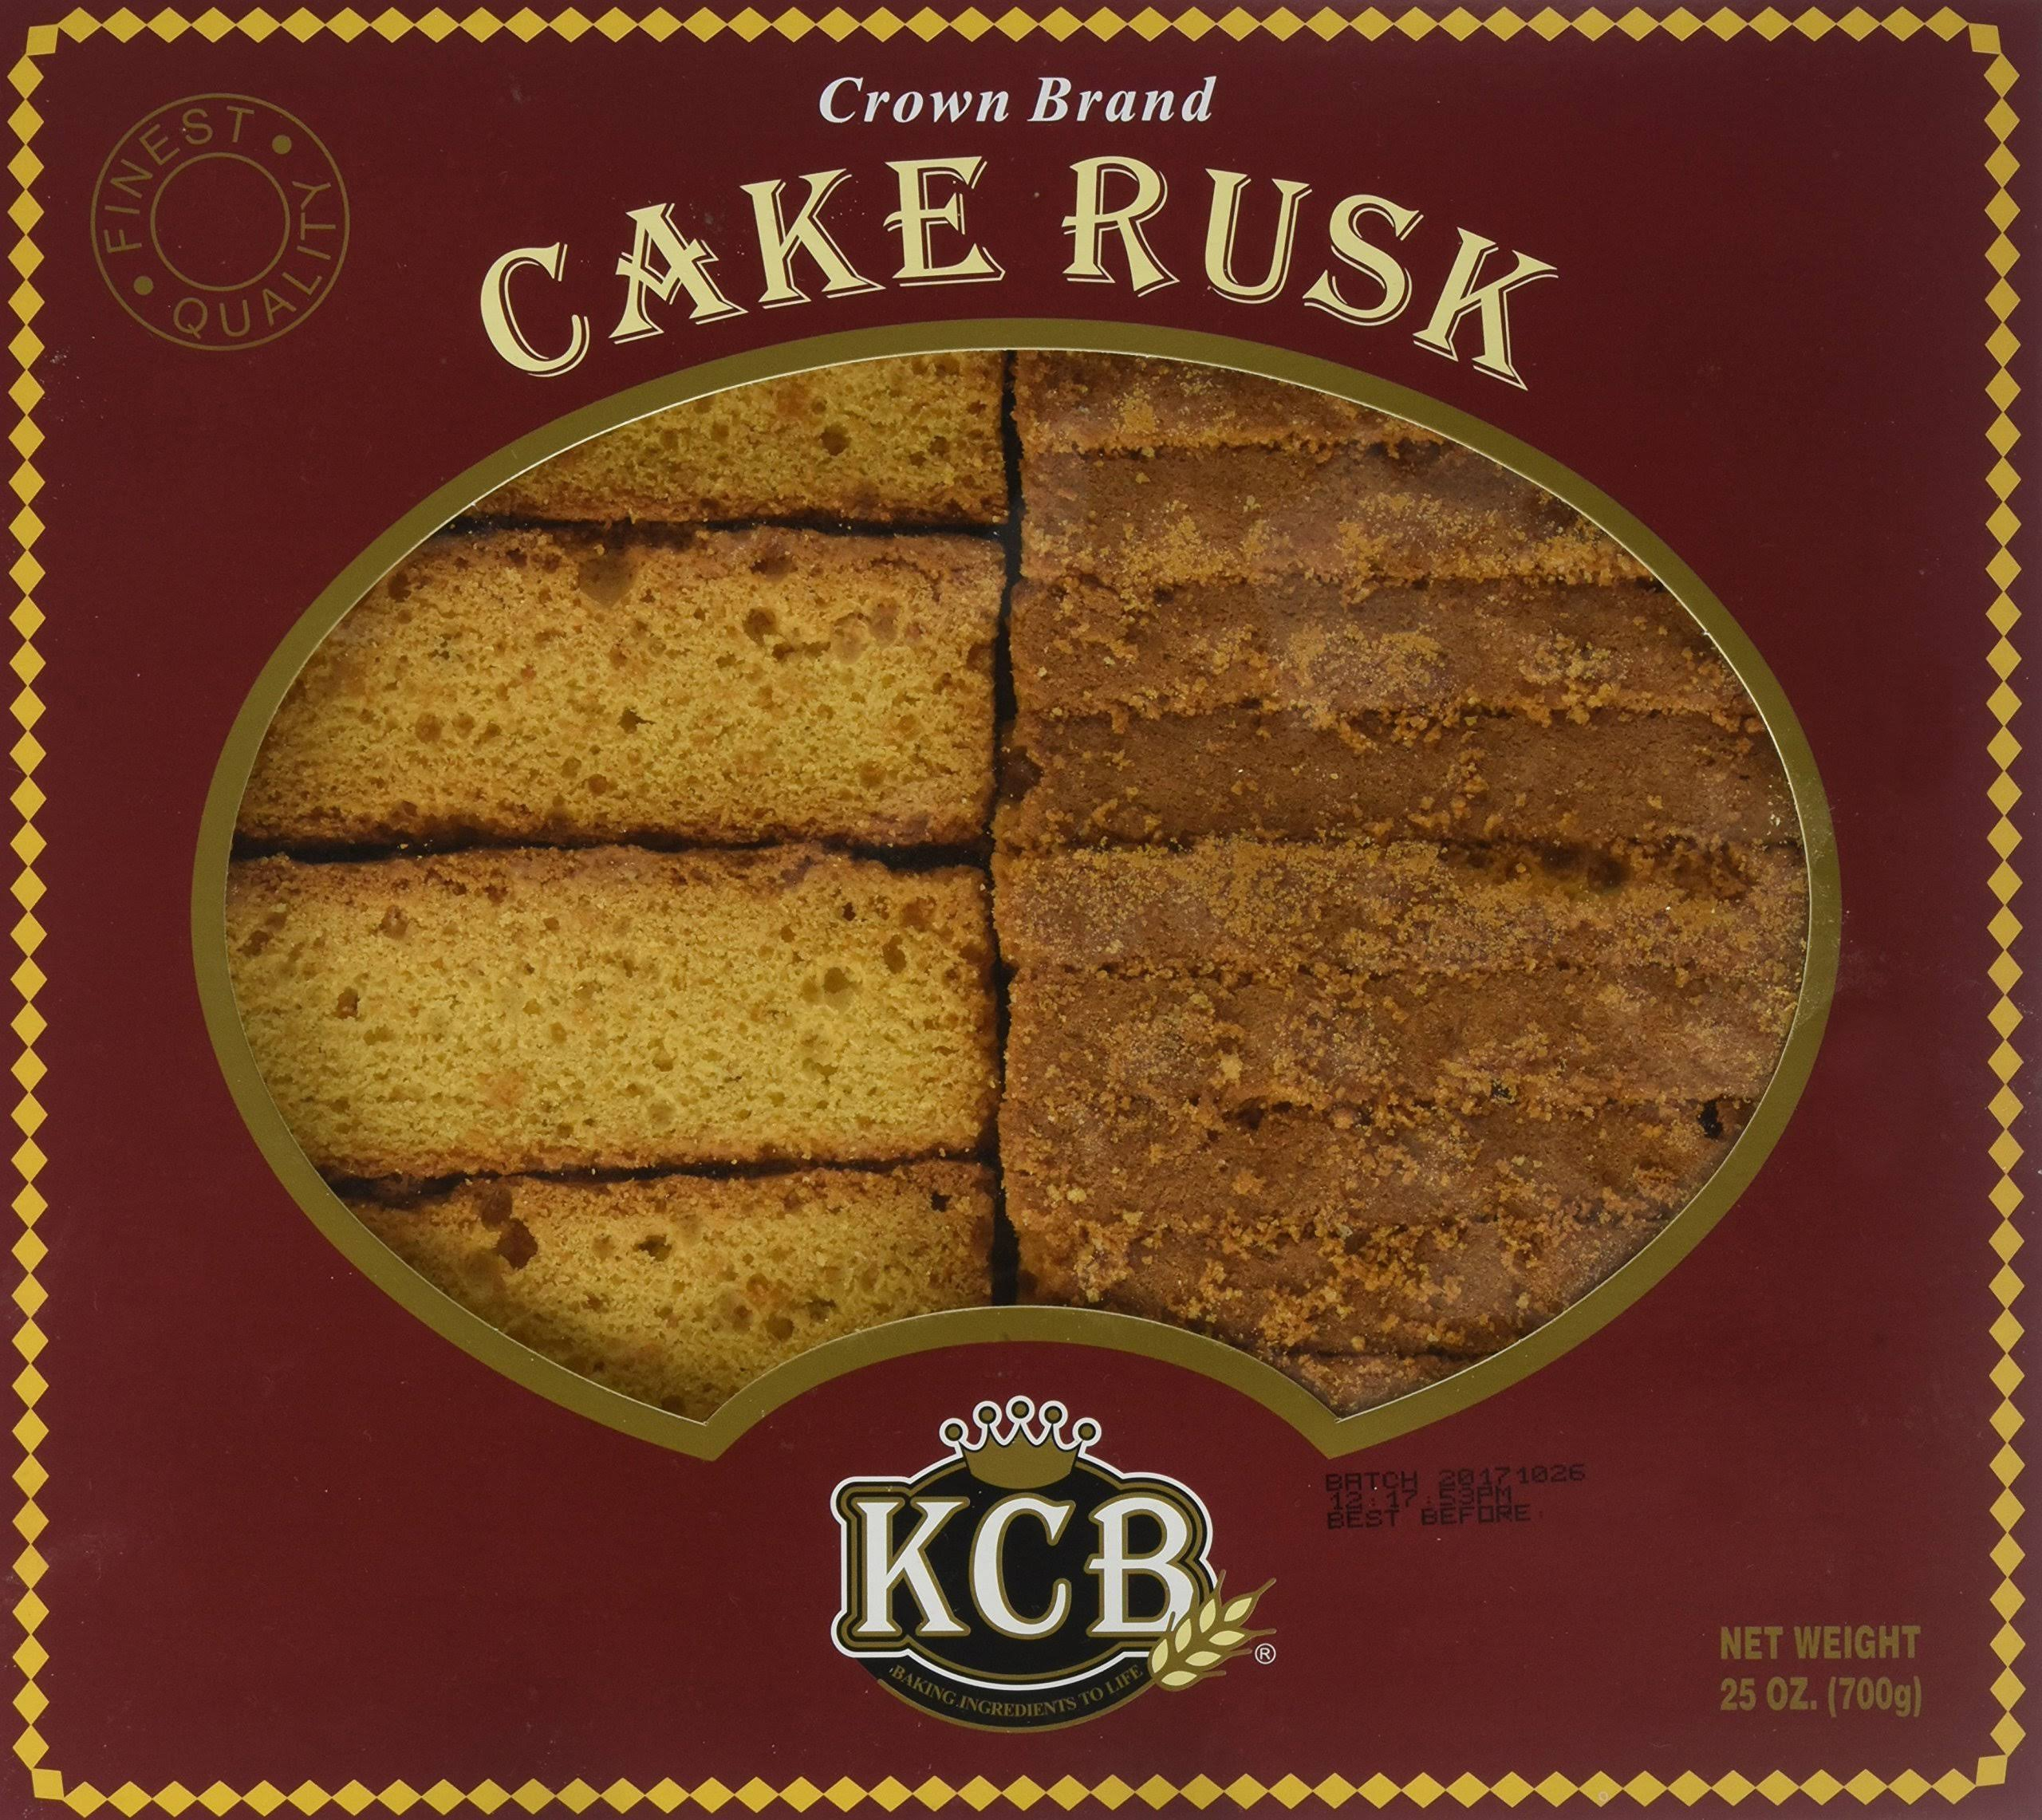 Kashmir Crown Bakeries Crown Brand Cake Rusk